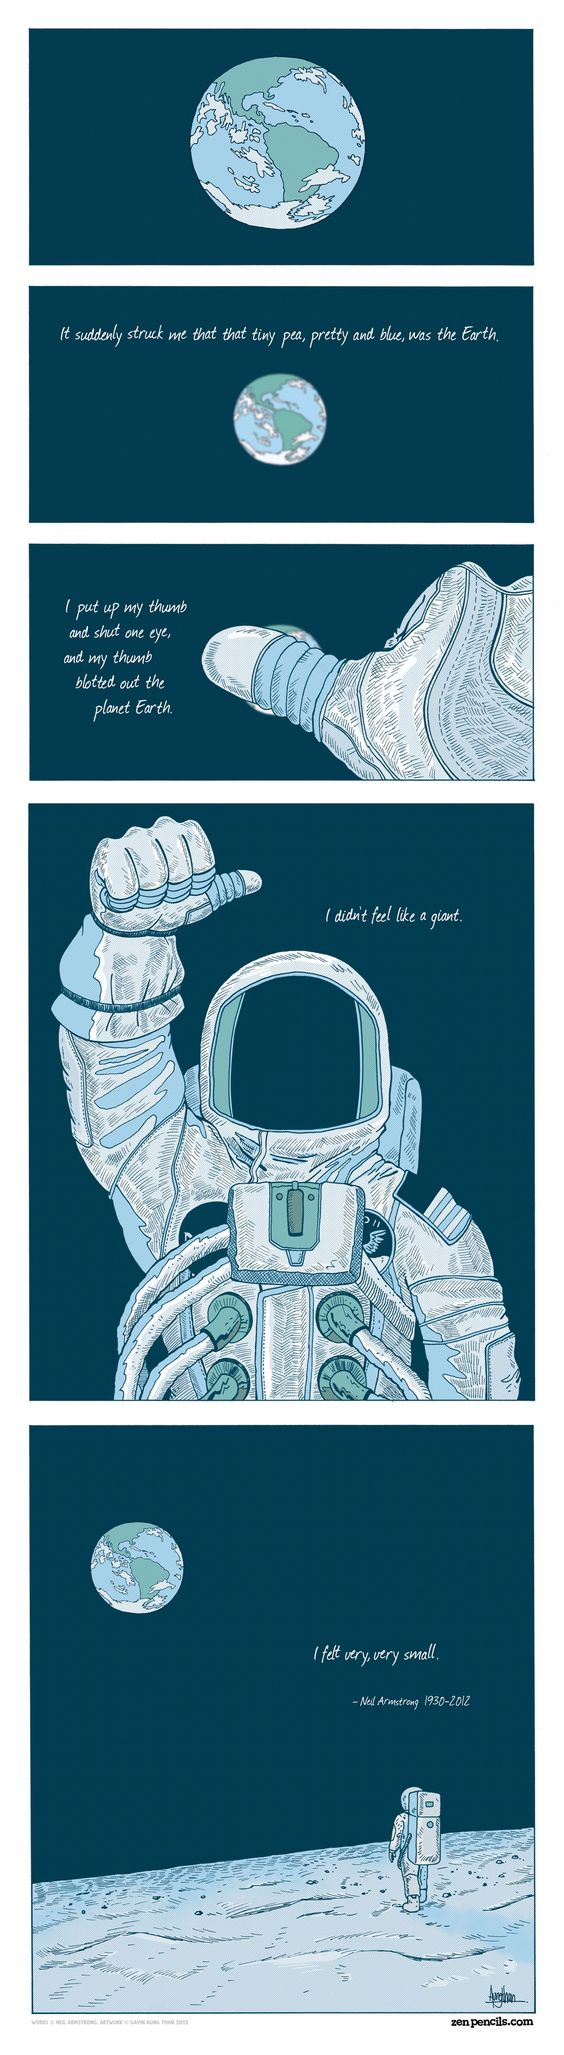 I'm Willing To Bet You've Never Been To The Moon. Here's What It Feels Like.